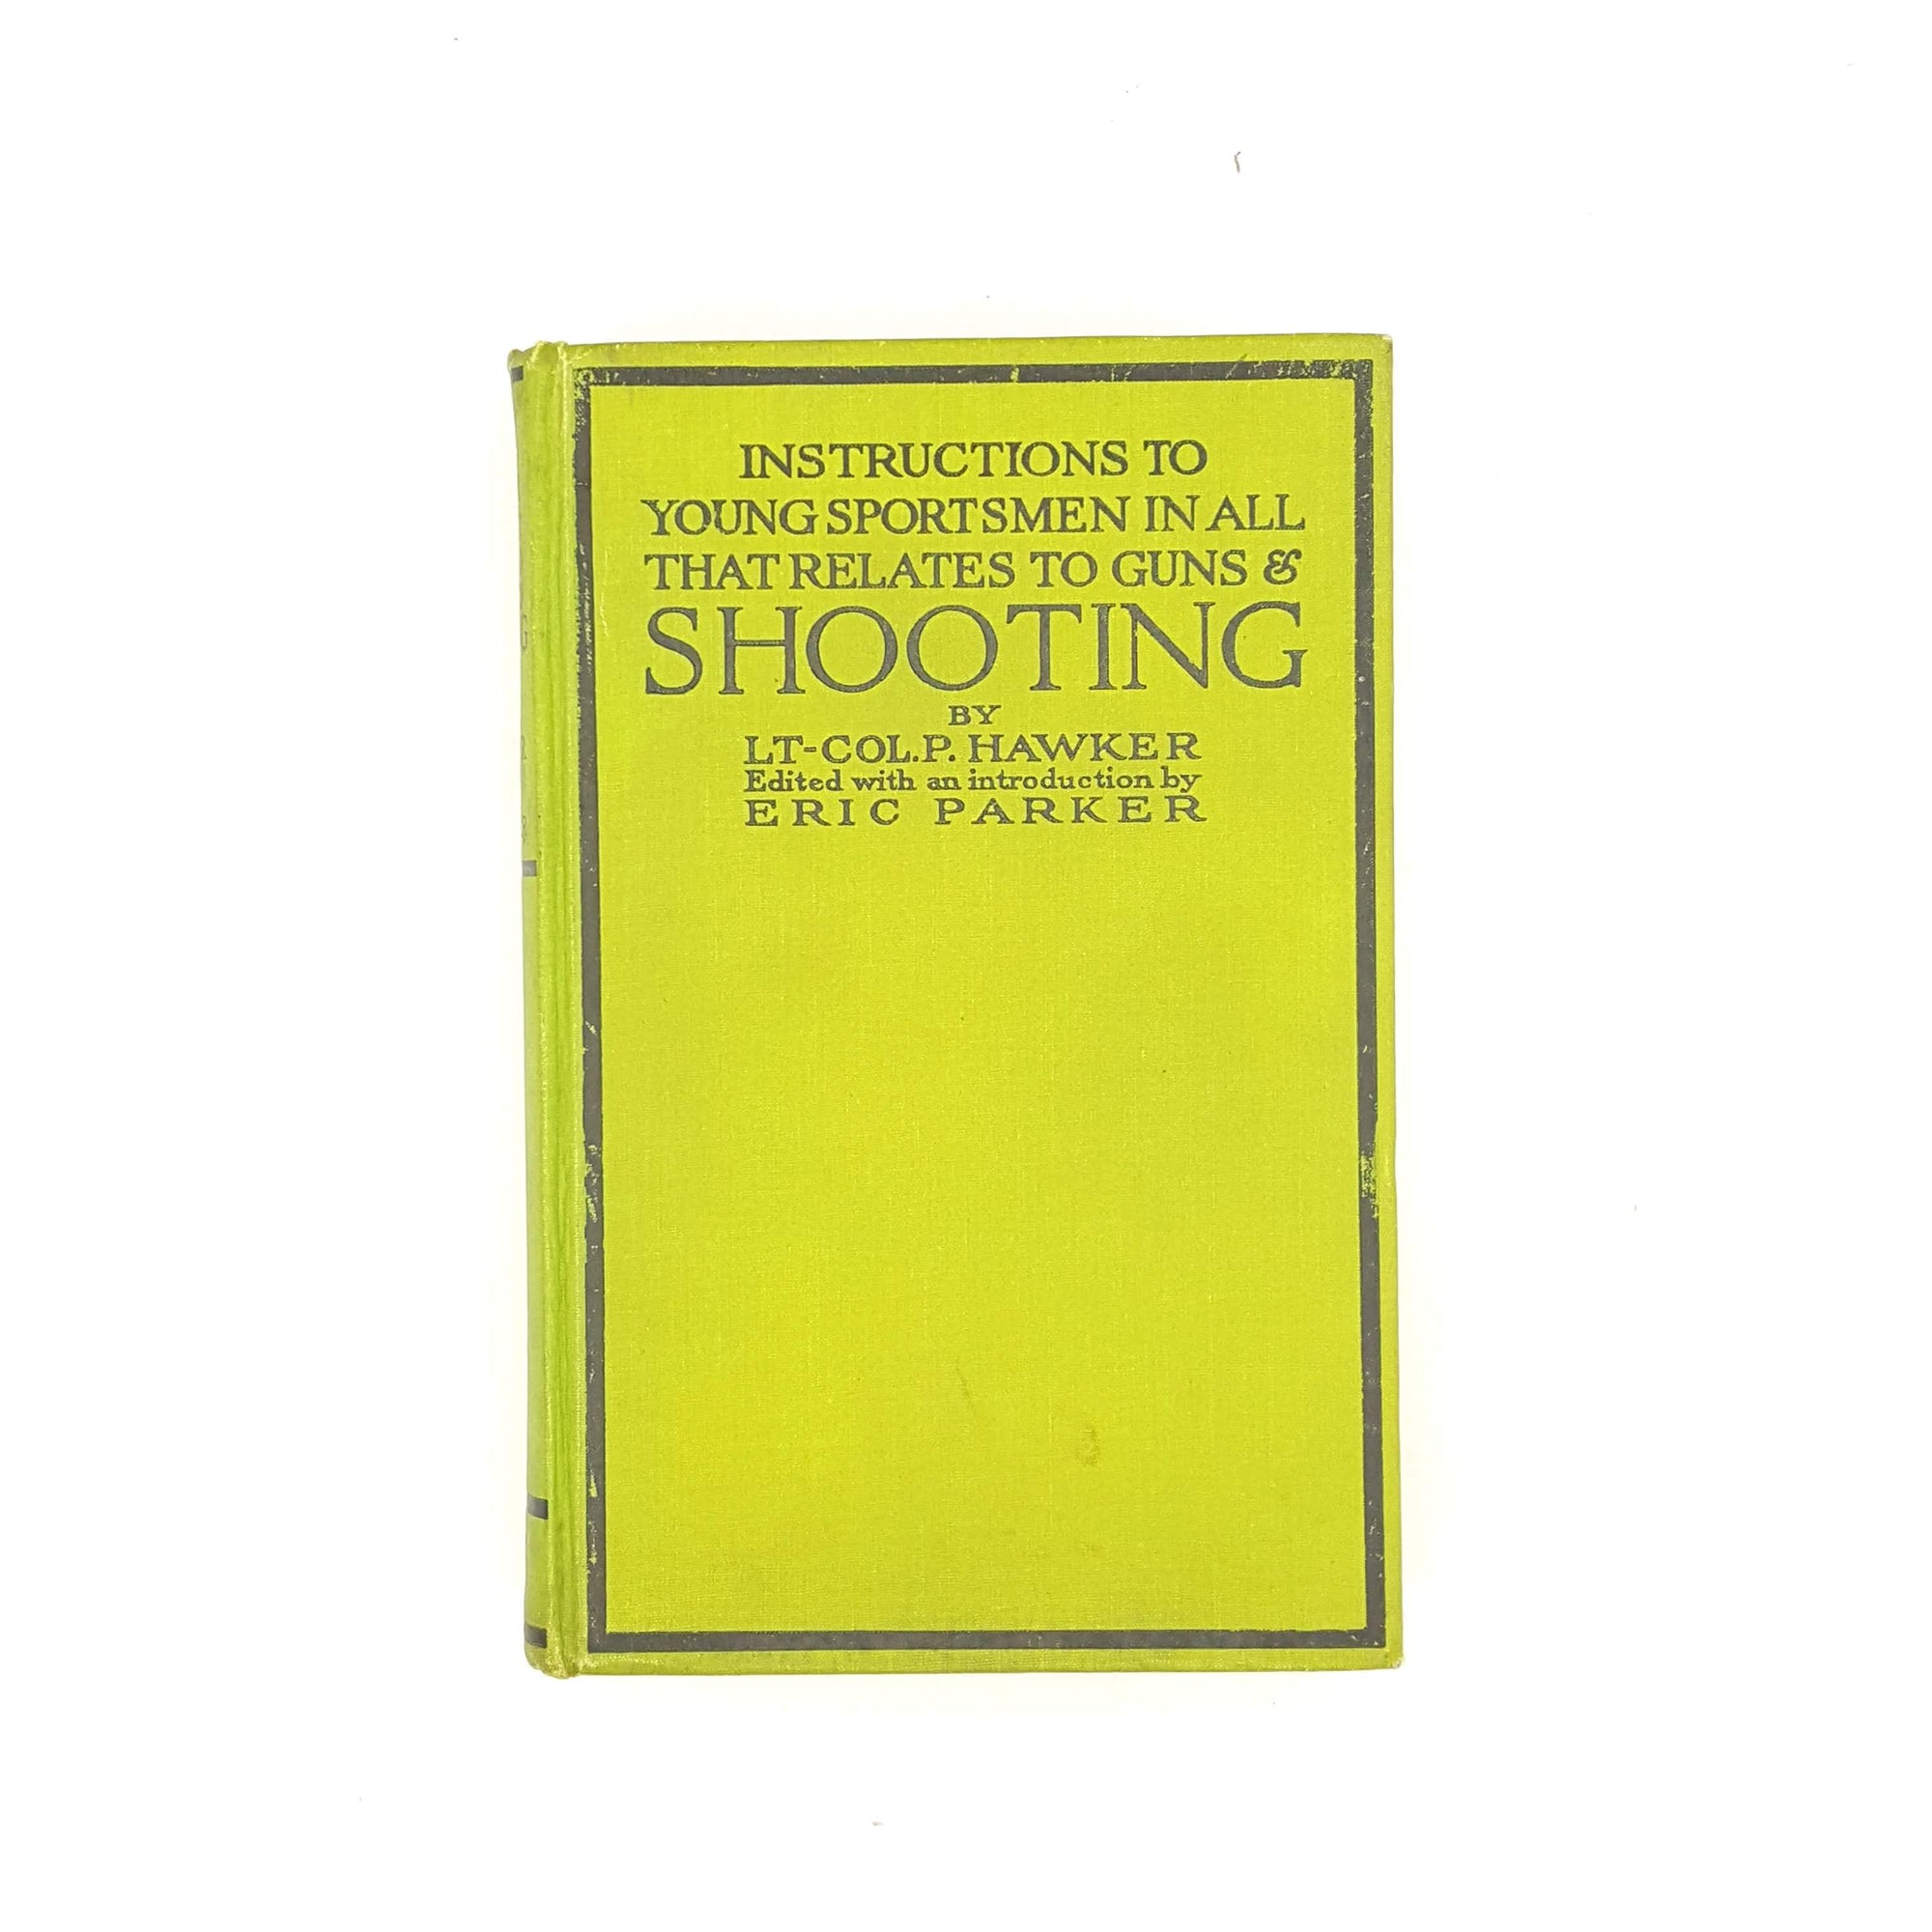 Instructions to Young Sportsmen in all that Relates to Guns & Shooting by LT-COL.P. Hawker 1922